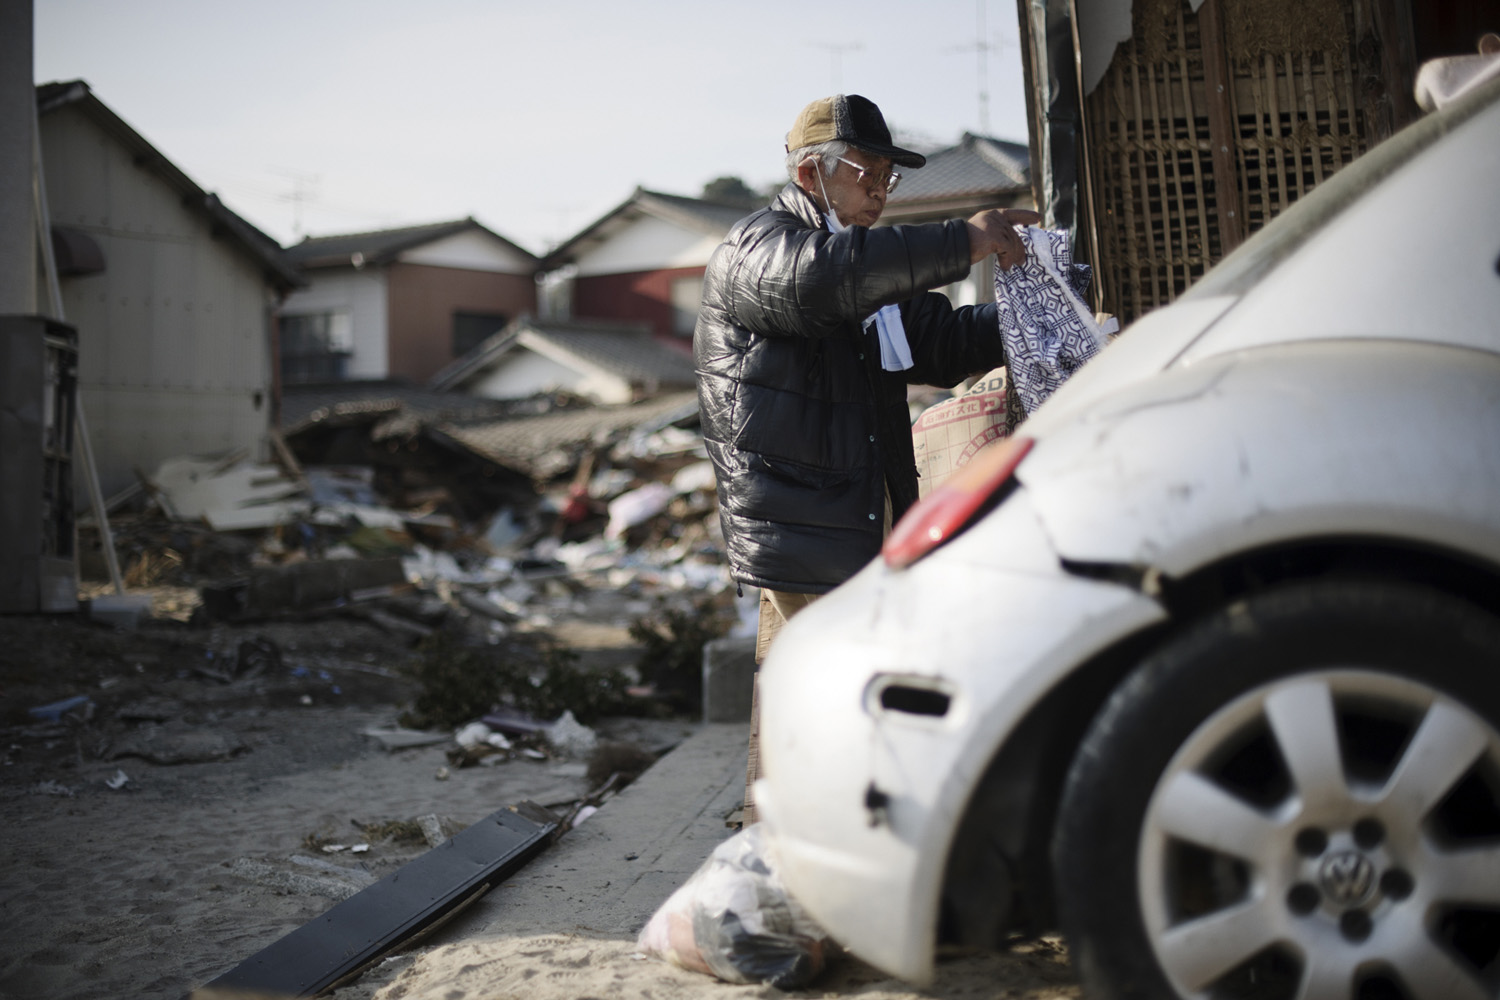 Iwaki City,  Japan, 6 April 2011 - A man sorts through belongings among a destroyed neighbourhood as people begin to return to the Fukushima region to clean up following the Tsunami. In some places, such as Iwaki City, 35 km from the Fukushima Daiichi nuclear plant, the radiation levels are lower as when the biggest leak took place the wind was blowing in the opposite direction. Greenpeace is working in the area to monitor radioactive contamination of food and soil to estimate the health and safety risks for the local population.